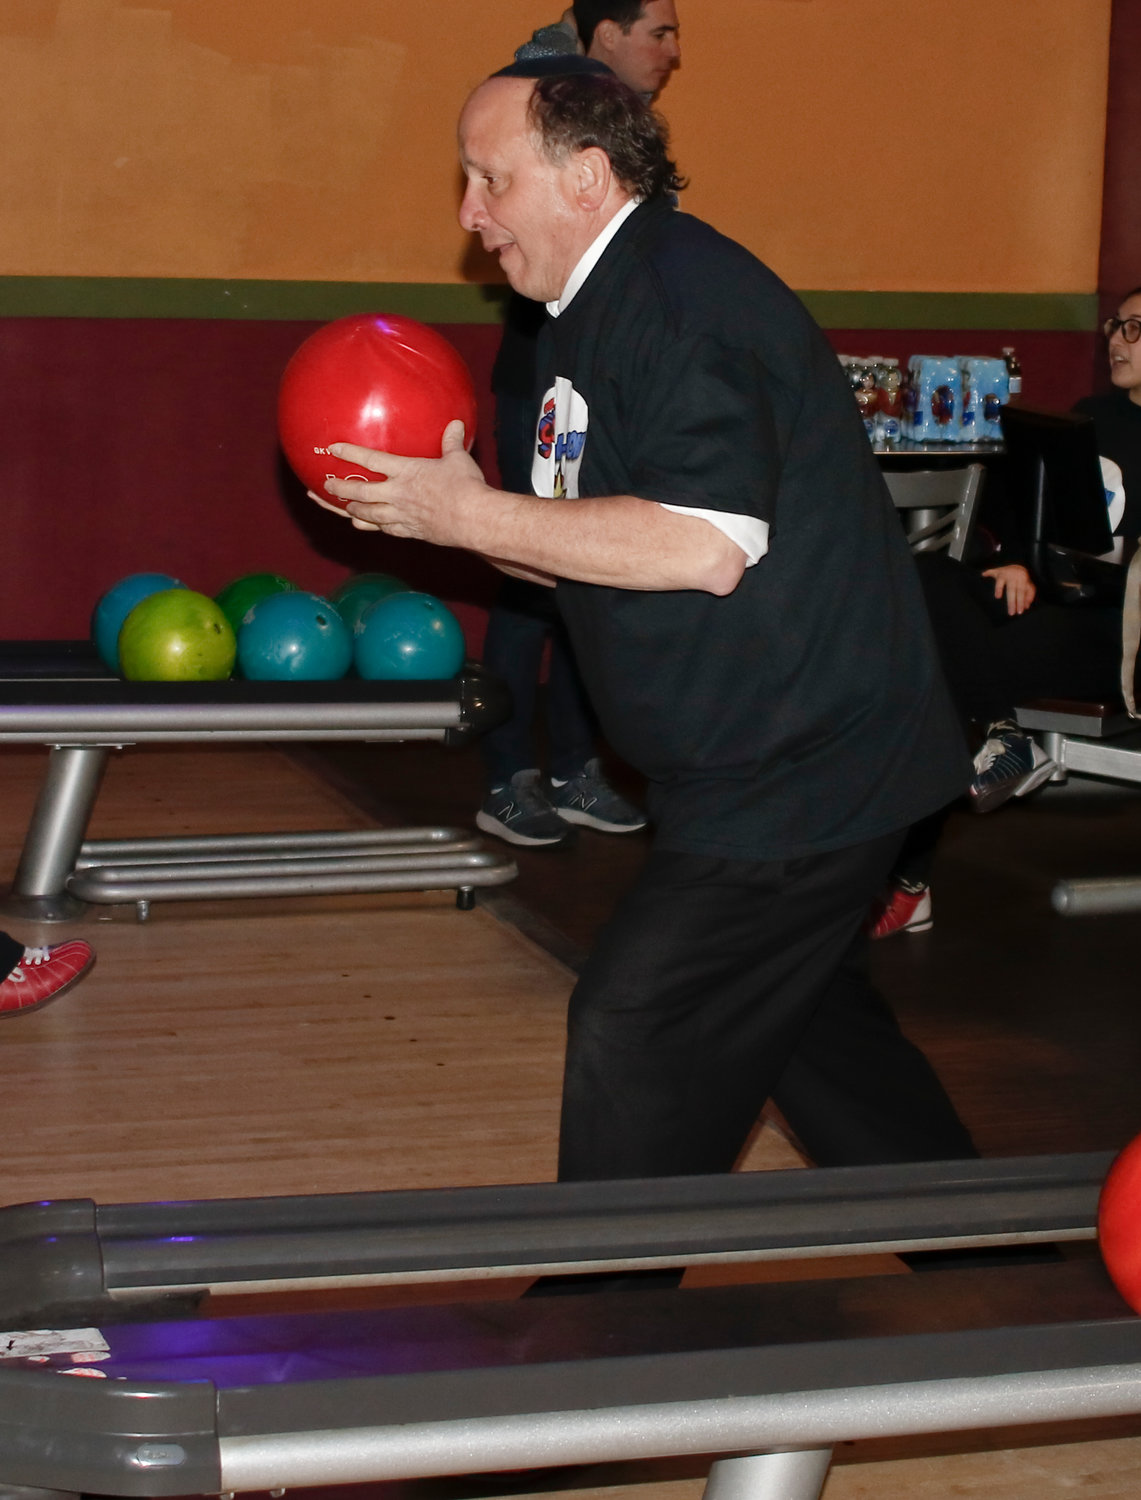 Rabbi Howard Diamond bowled a spare on his first turn up.